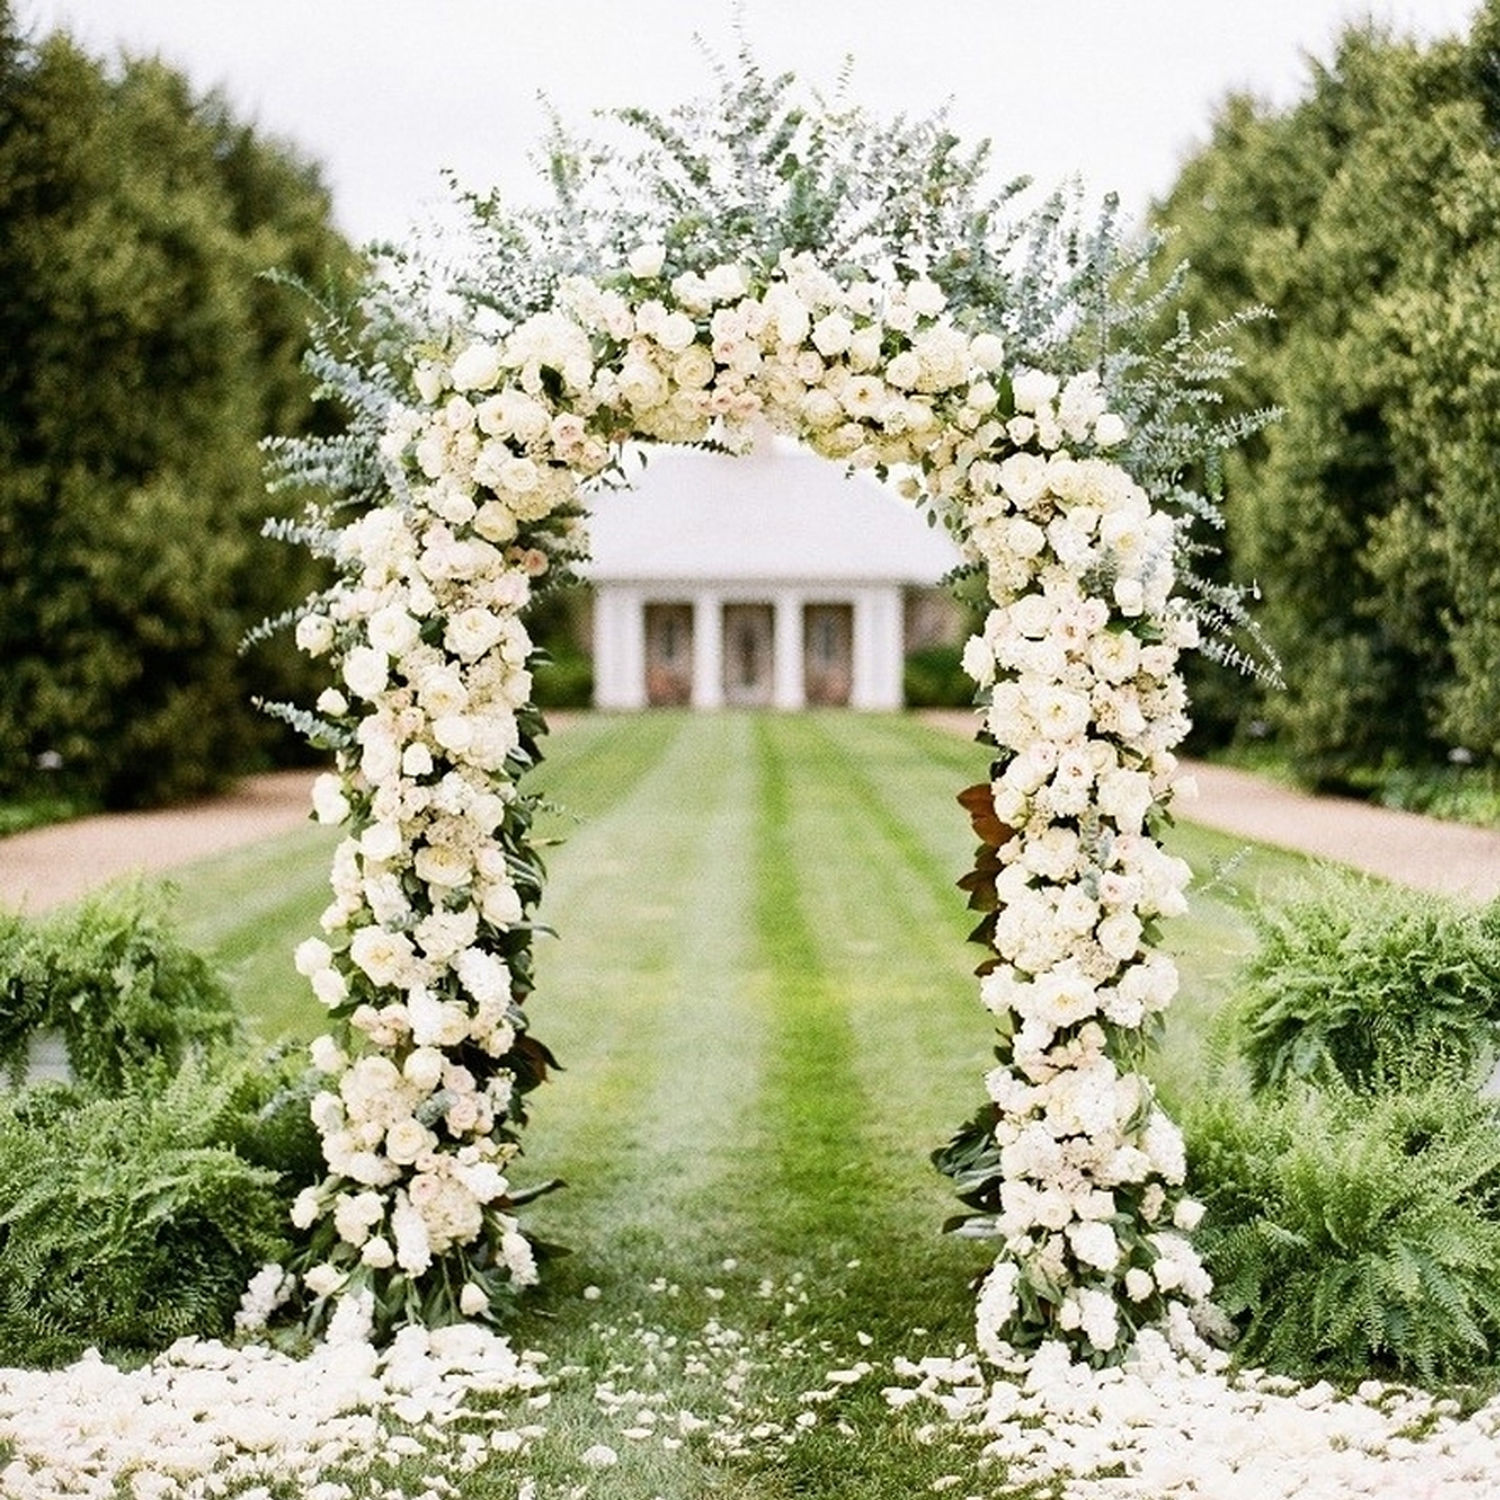 Wedding Arch Flowers Diy: White Metal Wedding Arch Garden Decoration Bridal Party